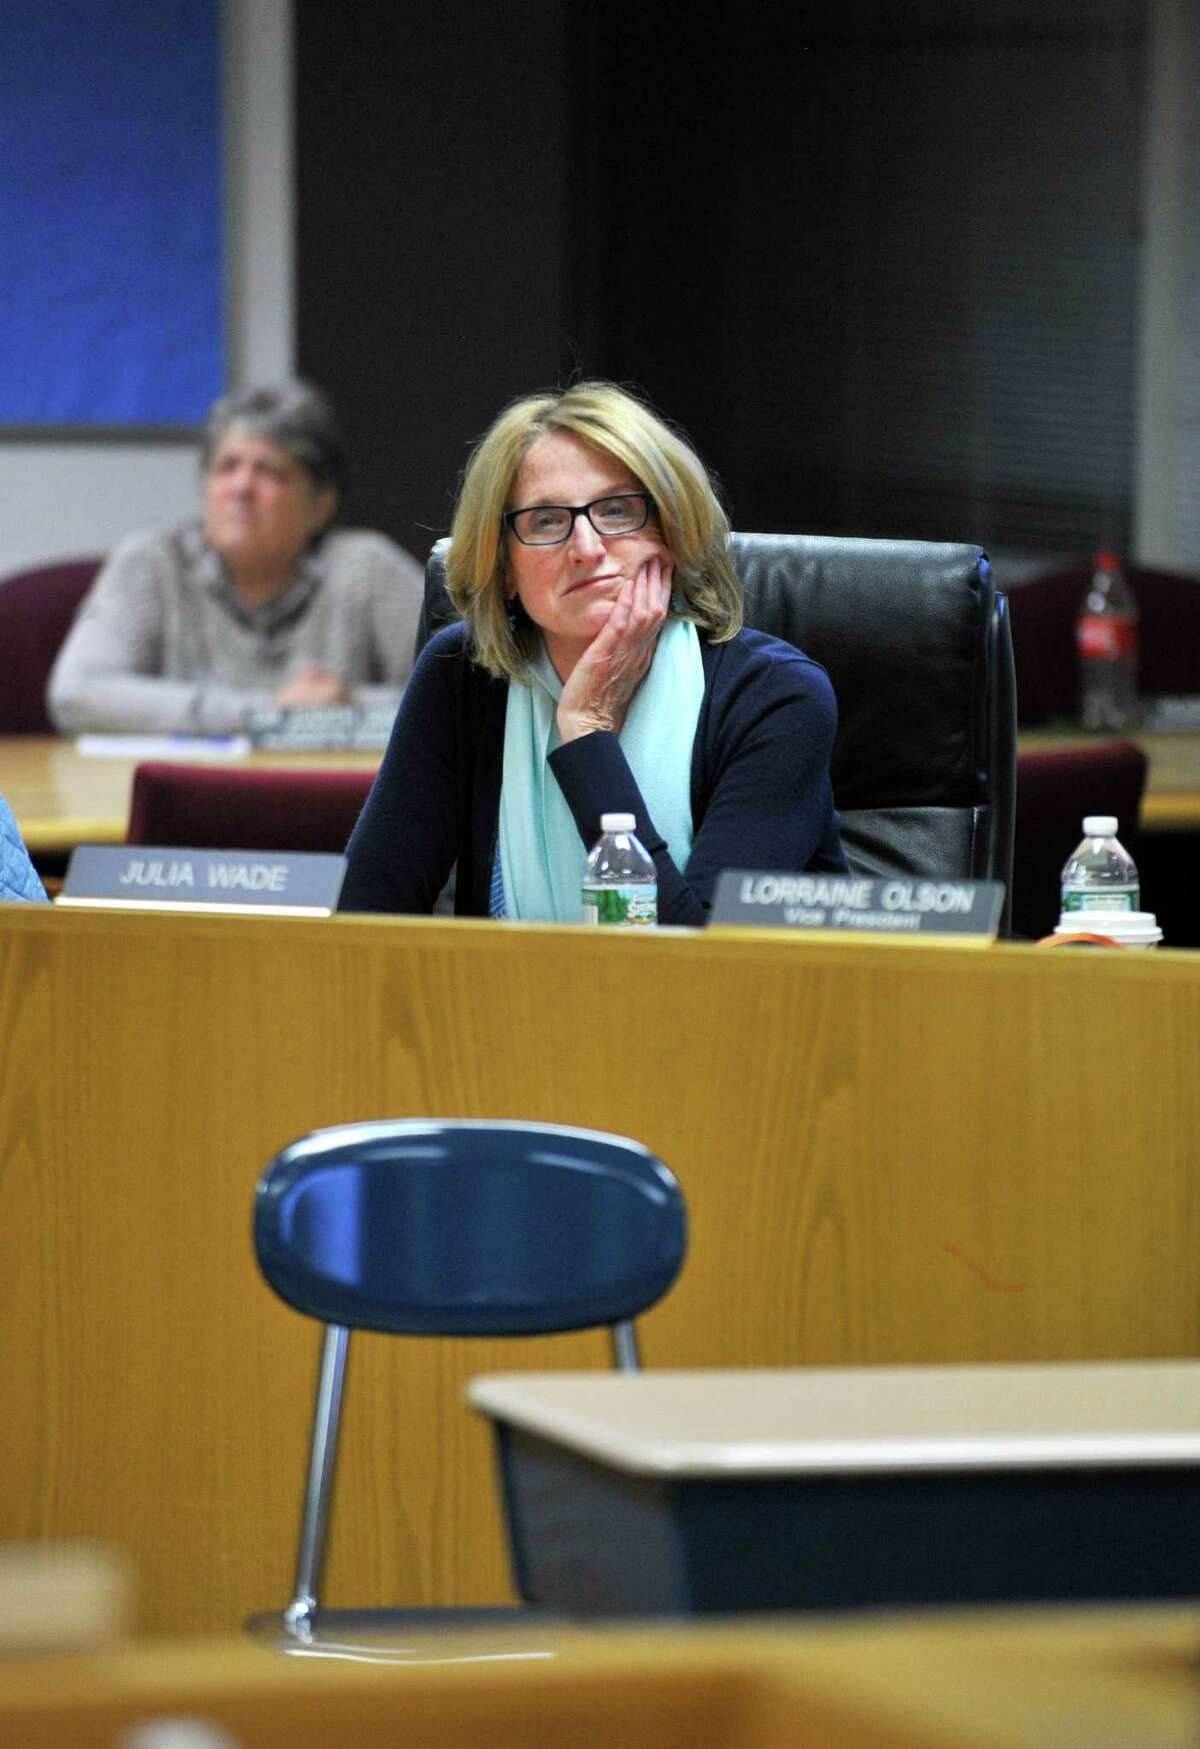 Stamford Board of Education member Julia Wade listens to Cort Wrotnowski appeal to the board for her dismissal on Tuesday night, Oct. 27, 2015. With Mr. Wrotnowski were several signs calling for Ms. Wade's resignation.